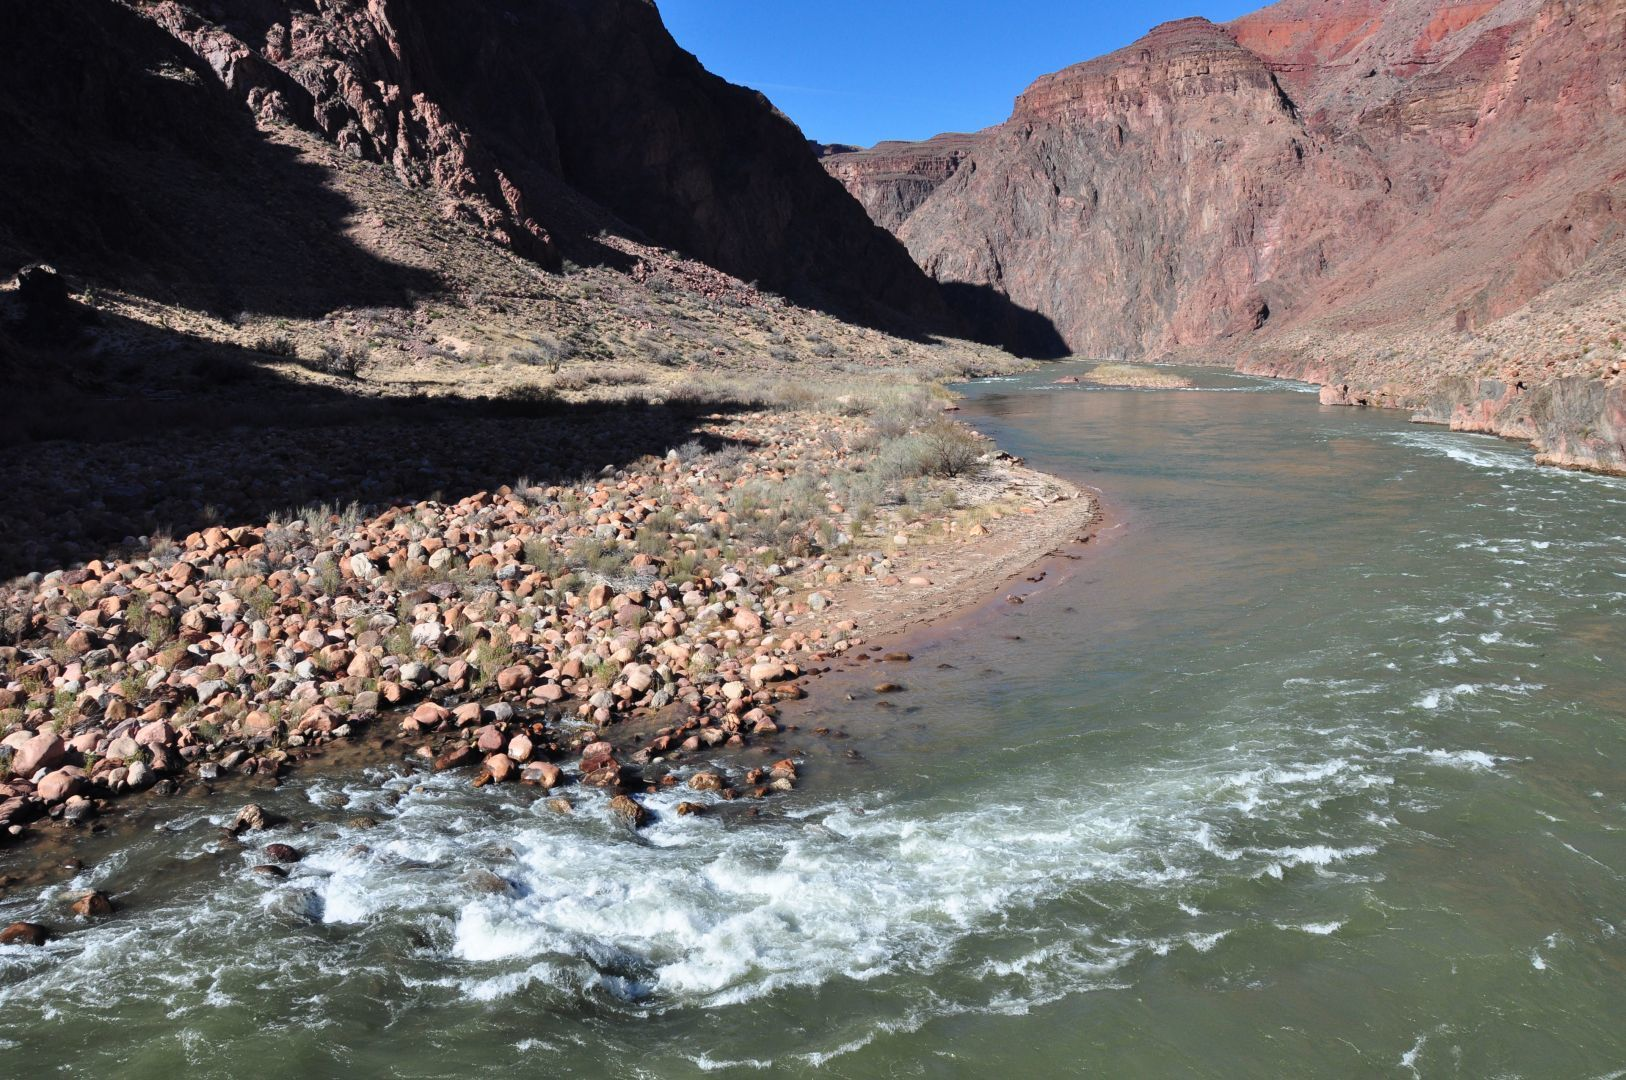 colorado river at the bottom of G canyon